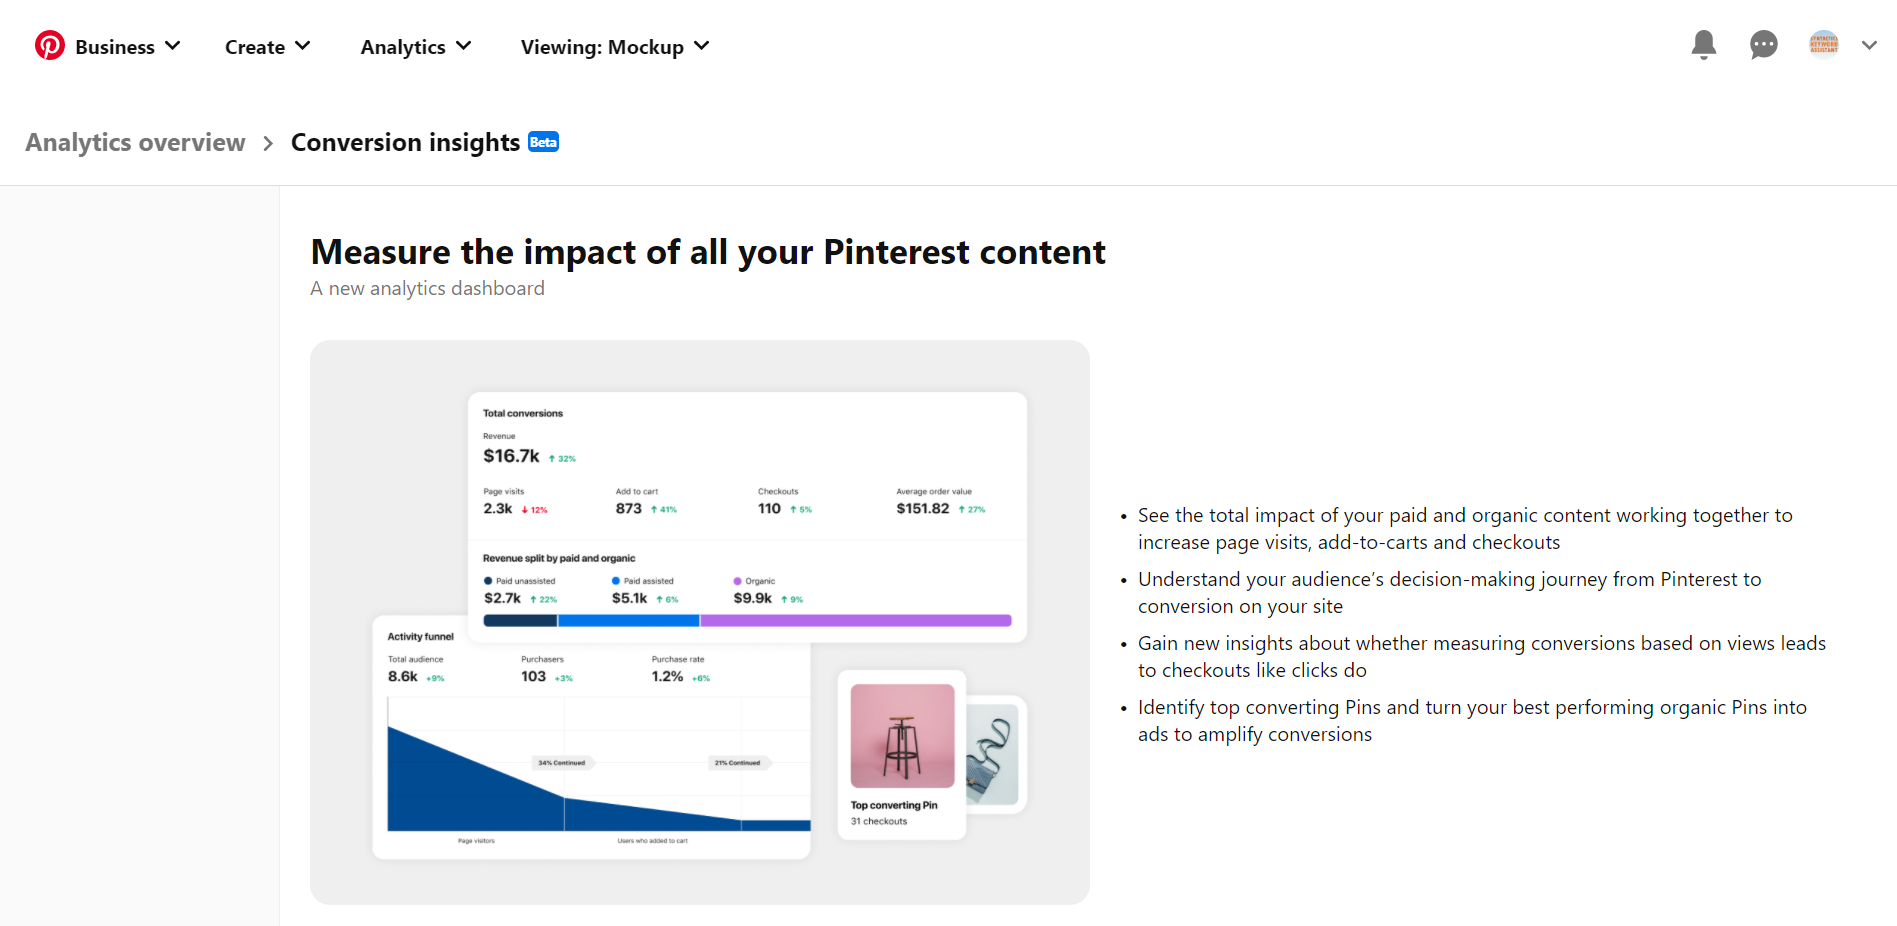 Why You Need a Pinterest Virtual Assistant Conversion Insights